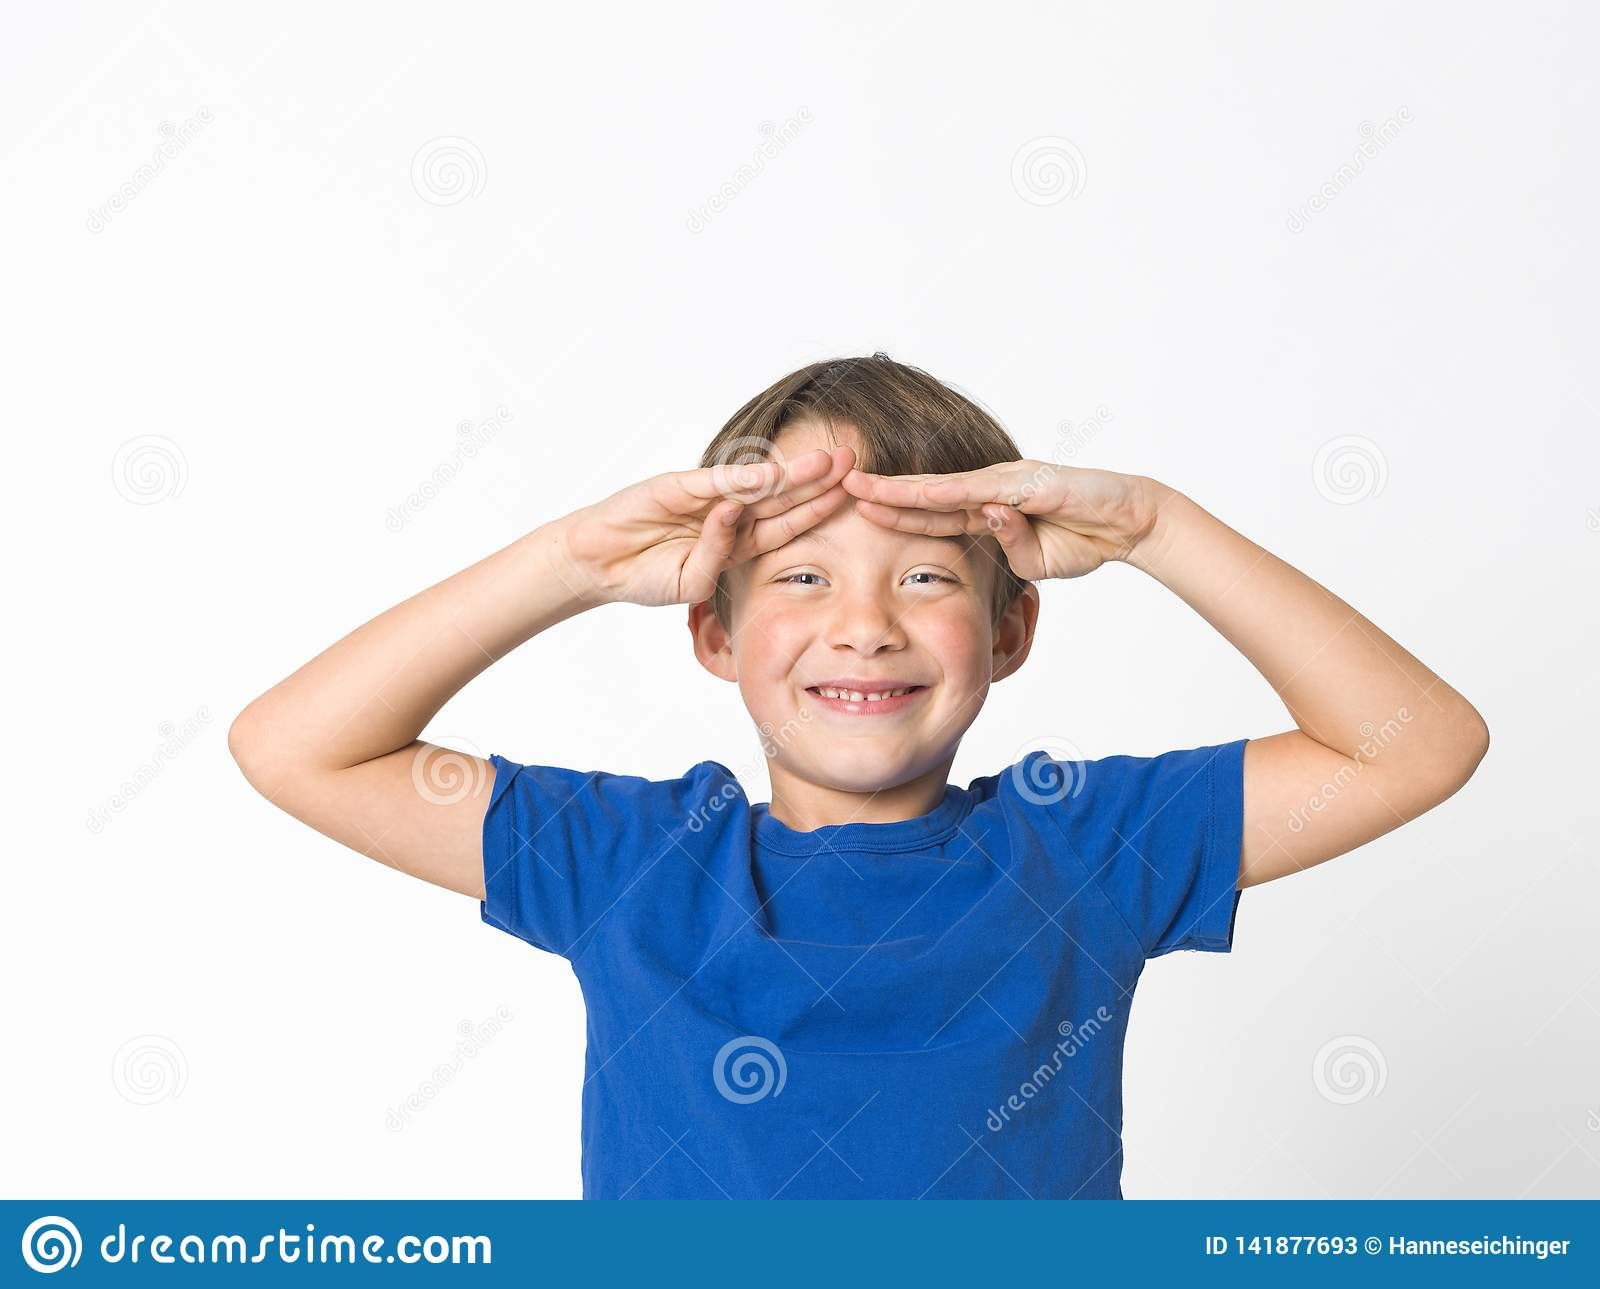 Cool and cute six year old boy in red trousers and blue shirt is posing in front of white background